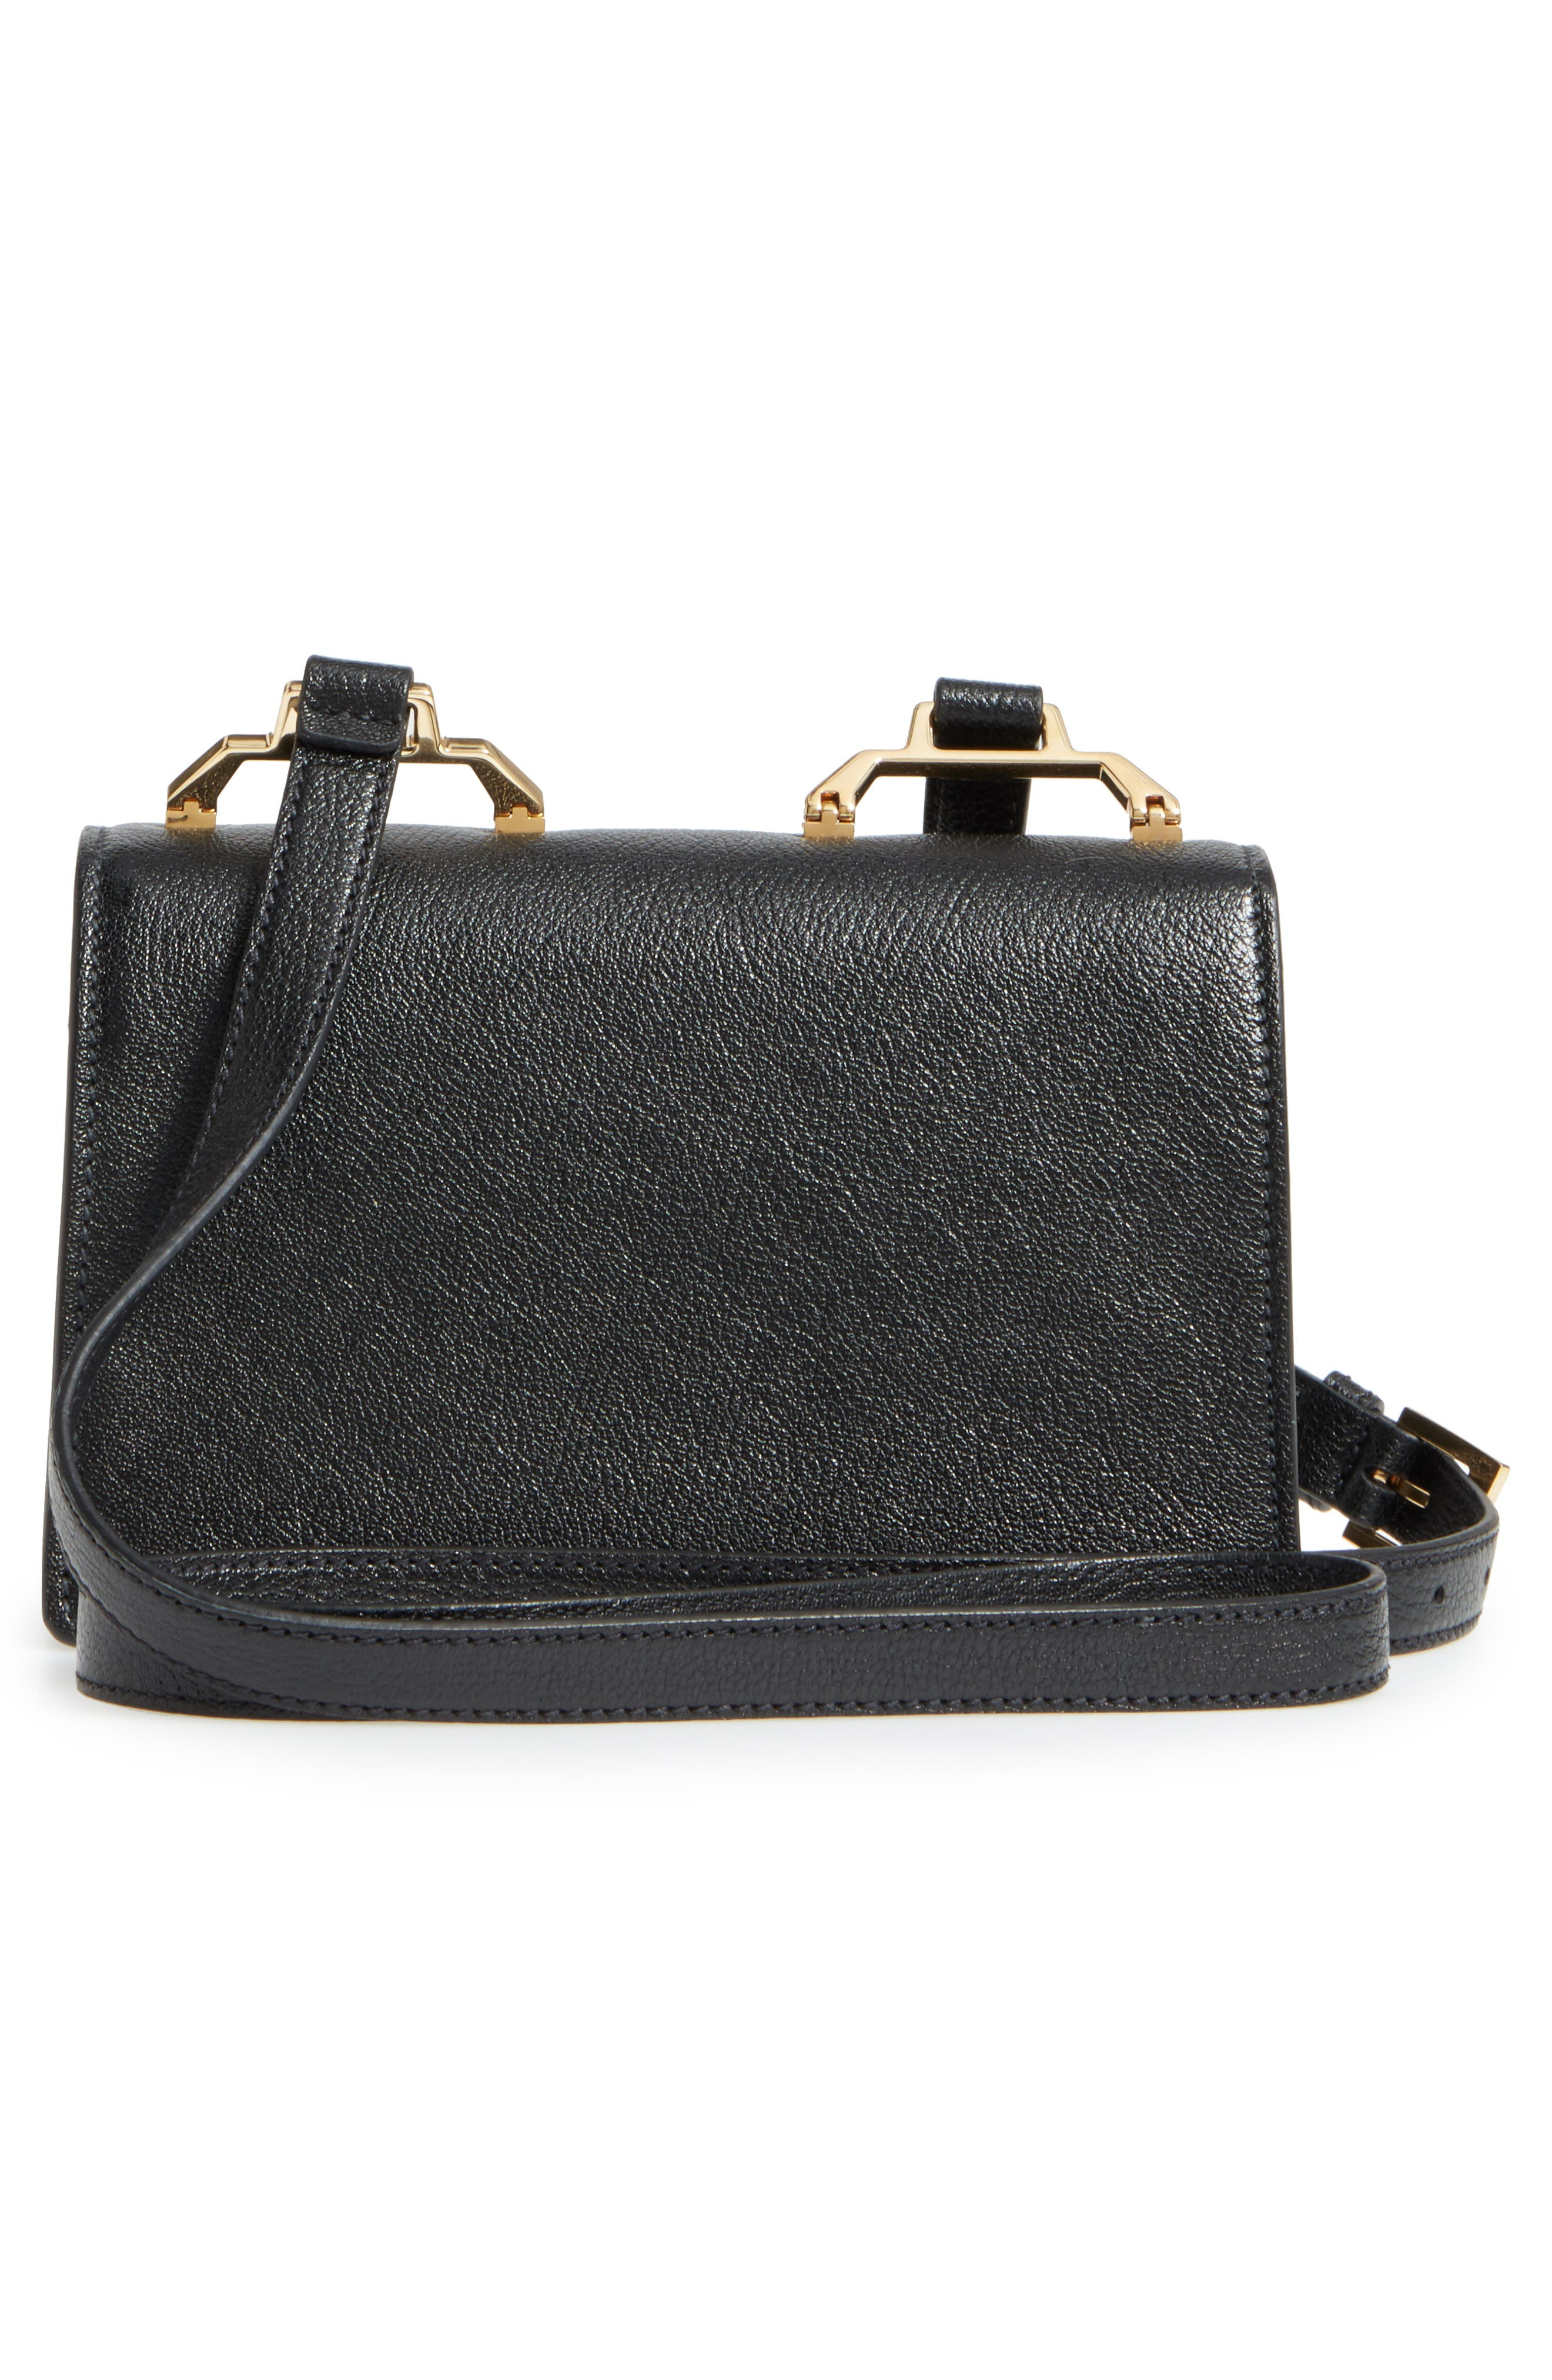 Madras Leather Crossbody Bag,                             Alternate thumbnail 3, color,                             Nero